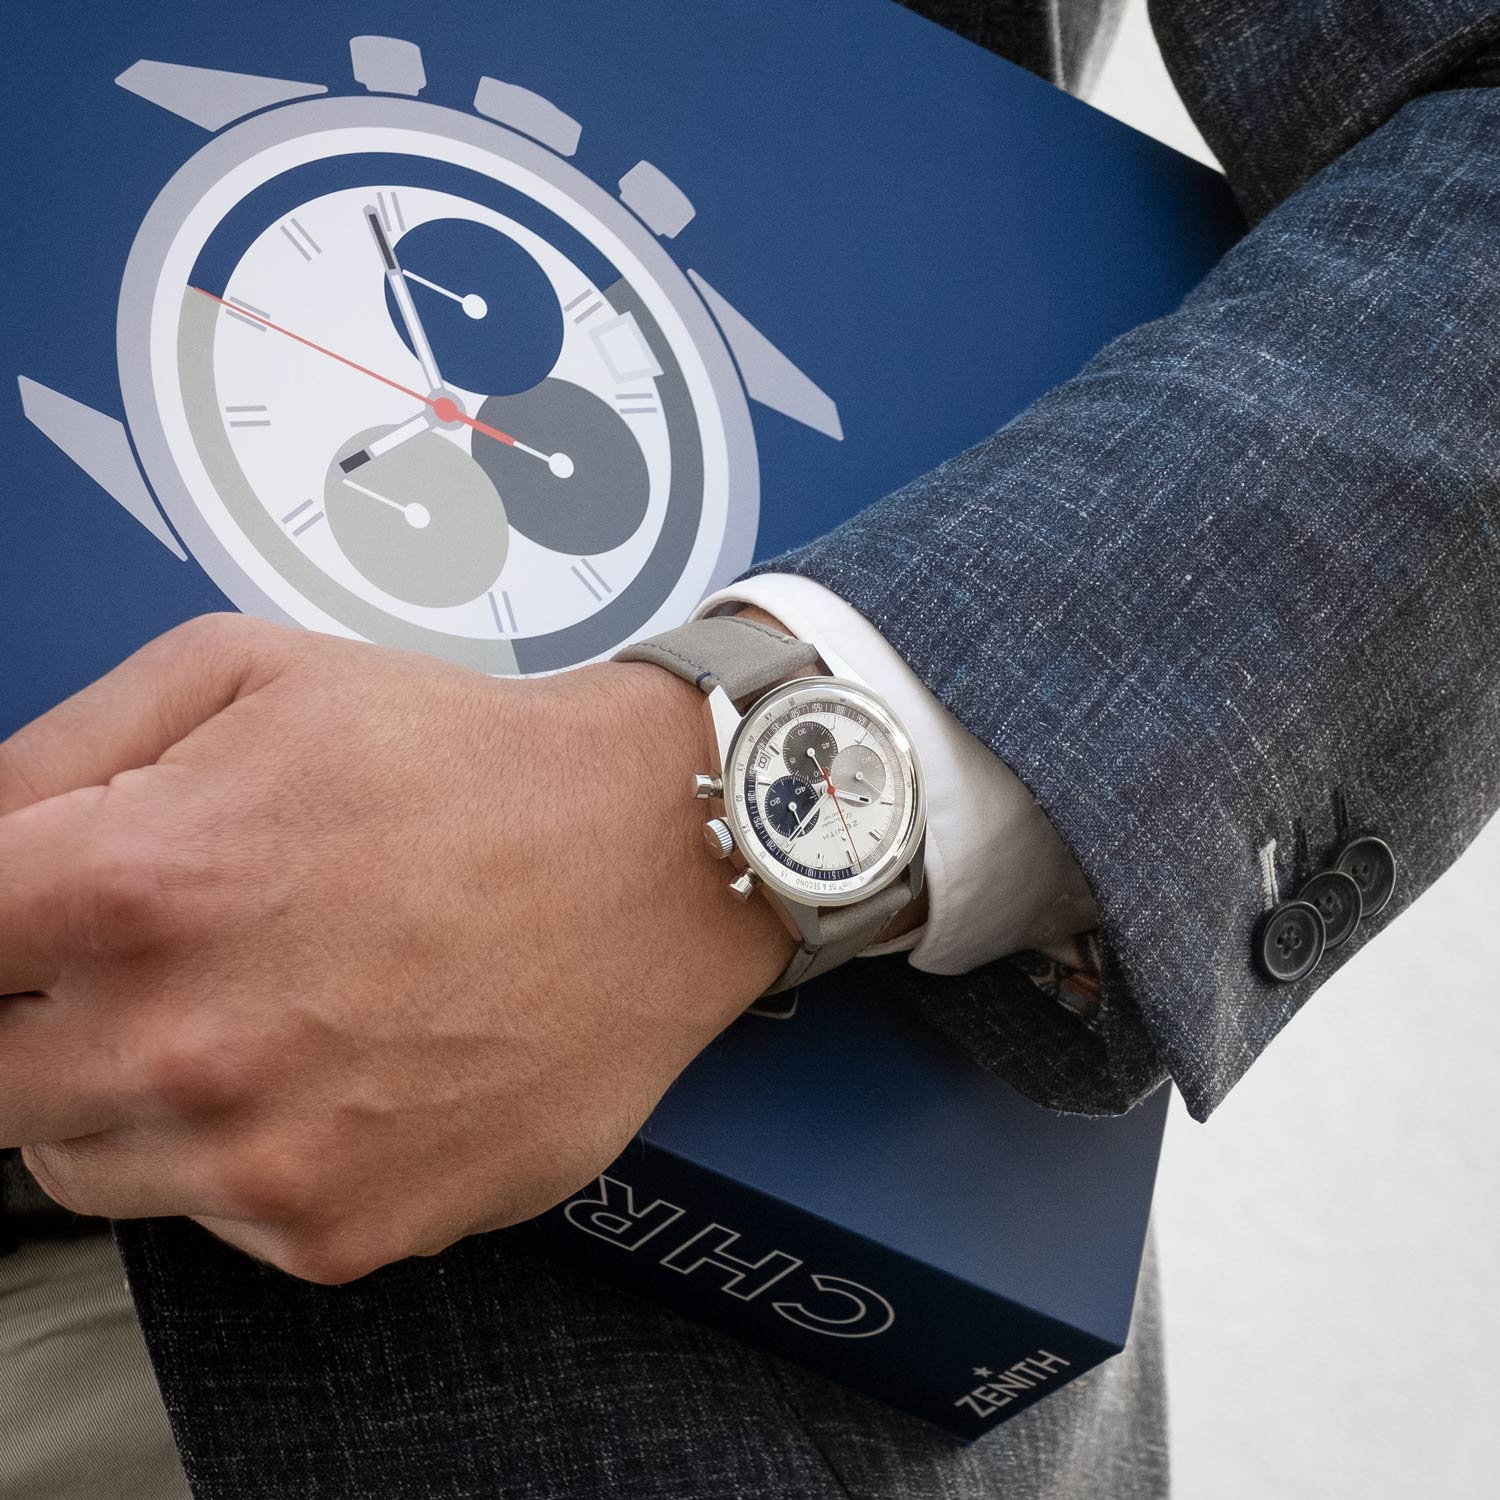 This is the second exclusive piece to emerge from the online boutique, and heralds the latest generation of the game changing El Primero movement.